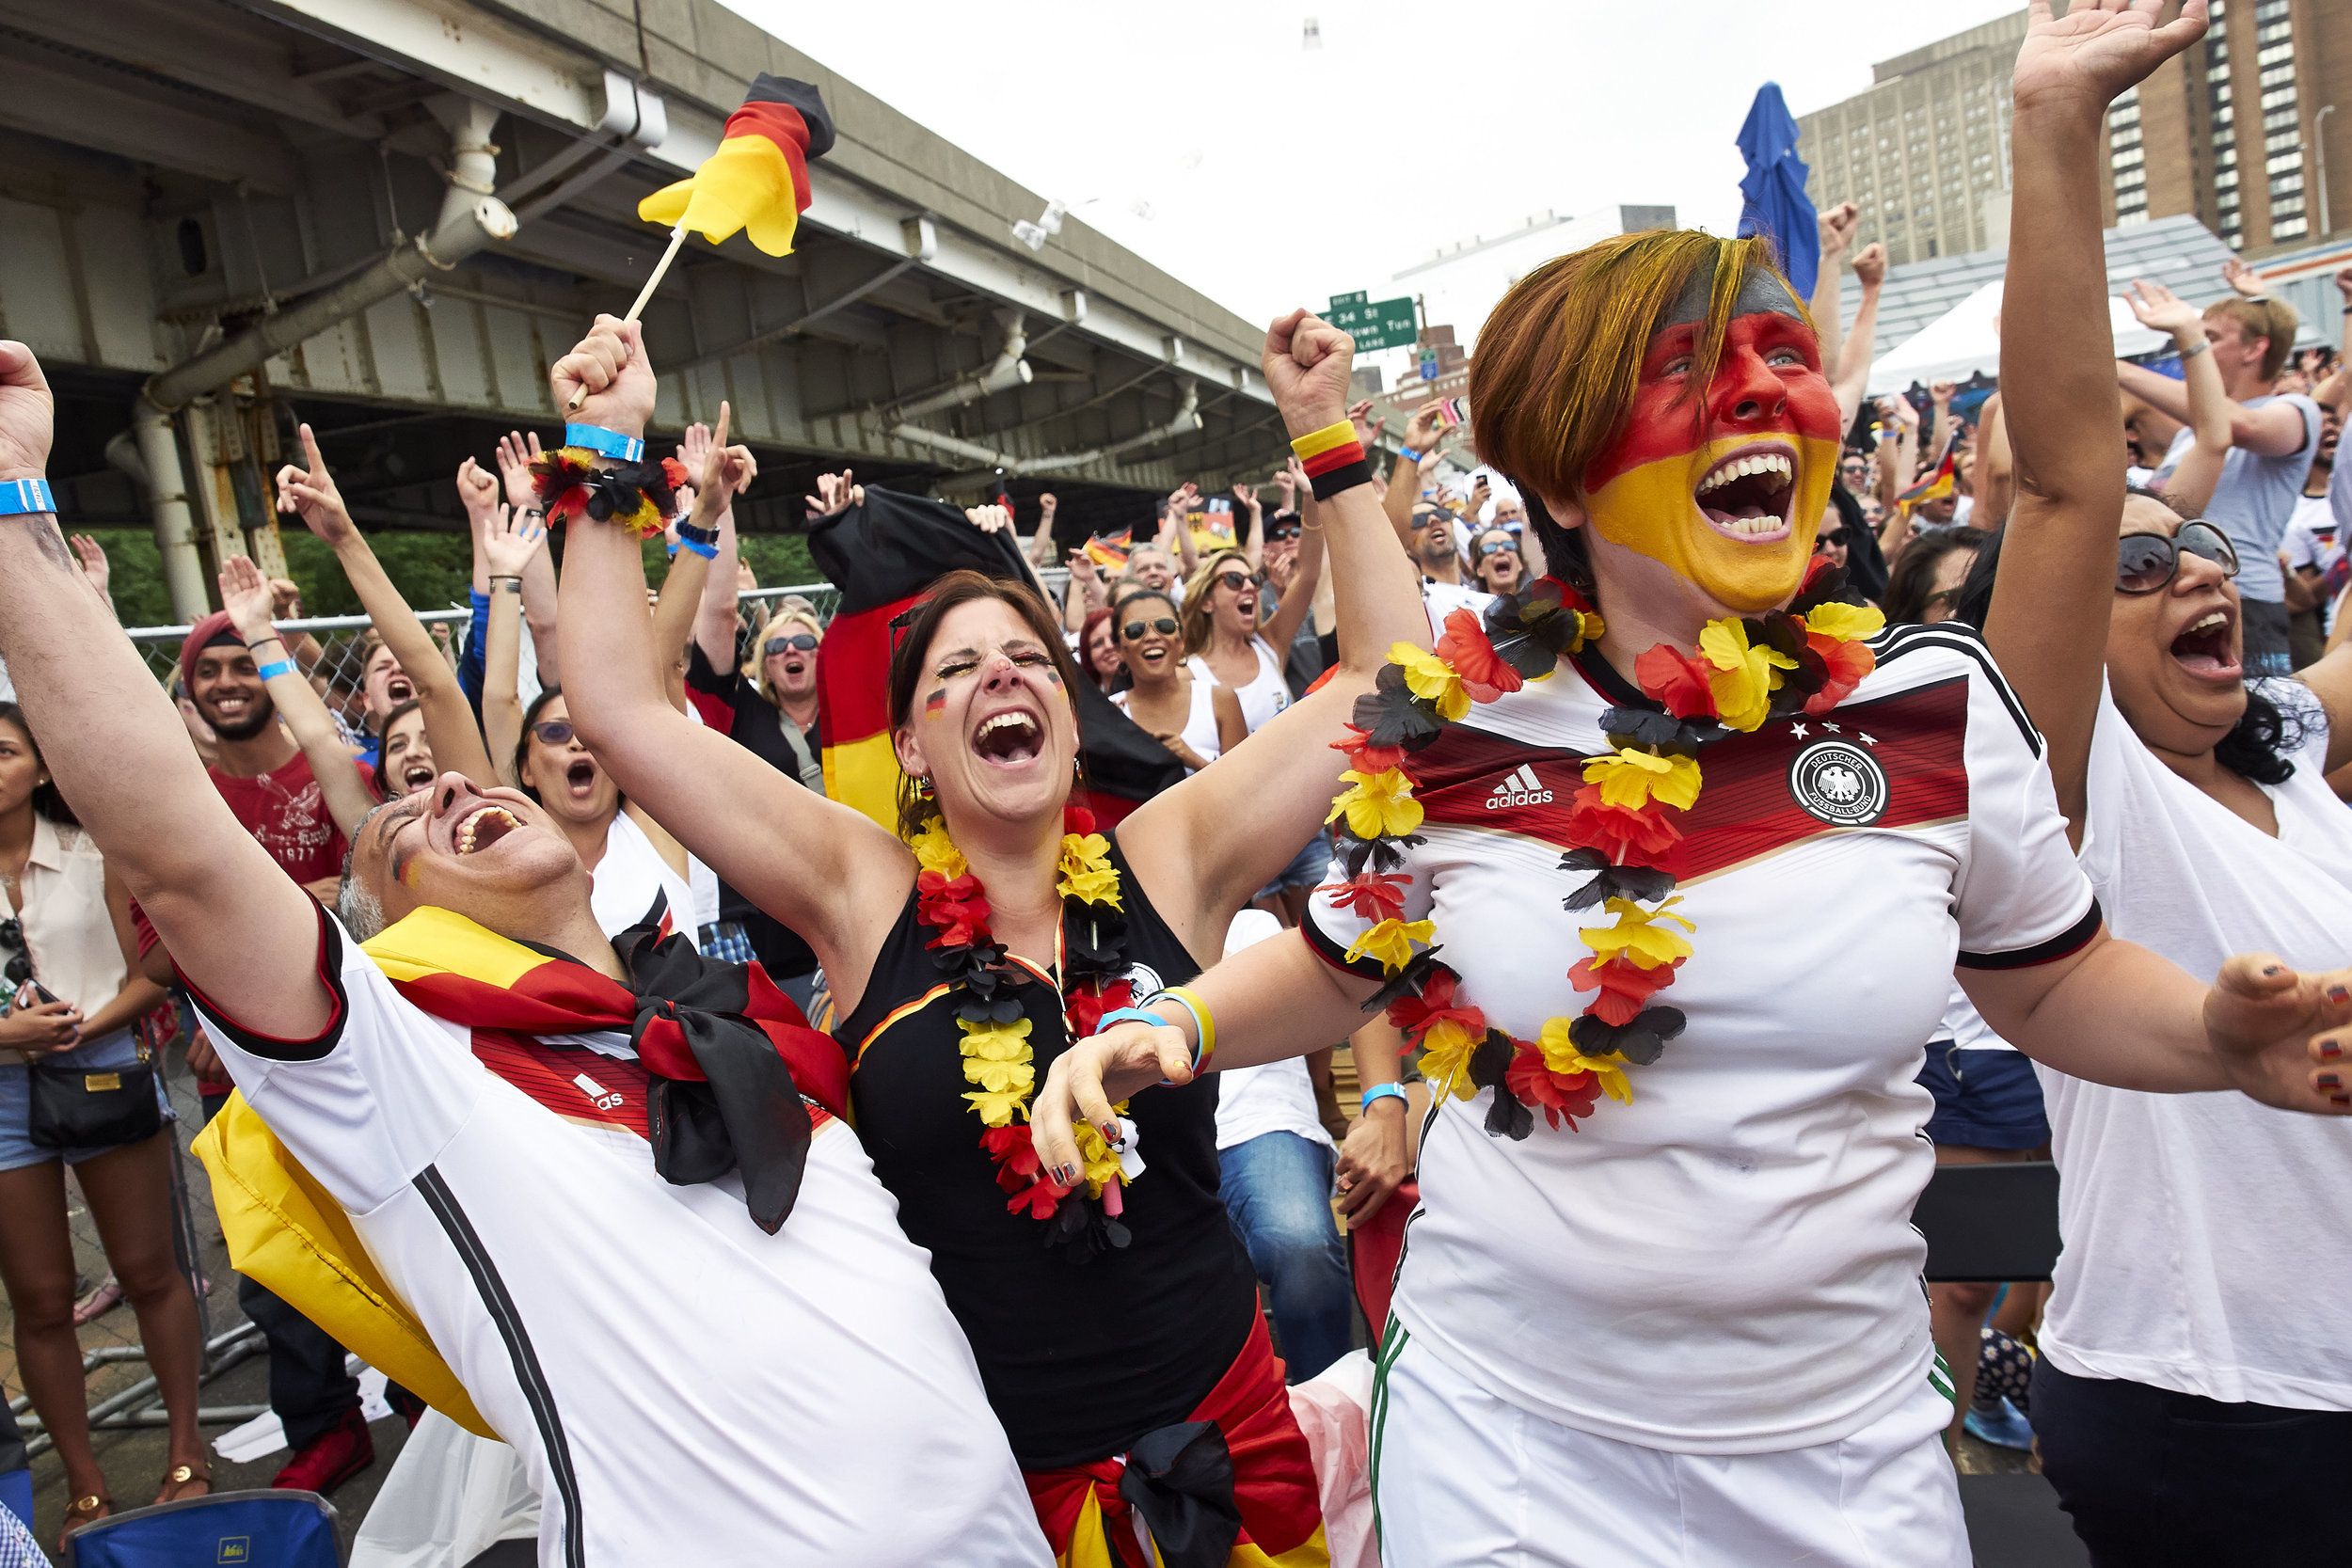 German fans celebrate their 1-0 victory over Argentina in the 2014 FIFA World Cup final between Germany during an outdoor viewing near the East River on Sunday, July 13, 2014 in New York, N.Y.